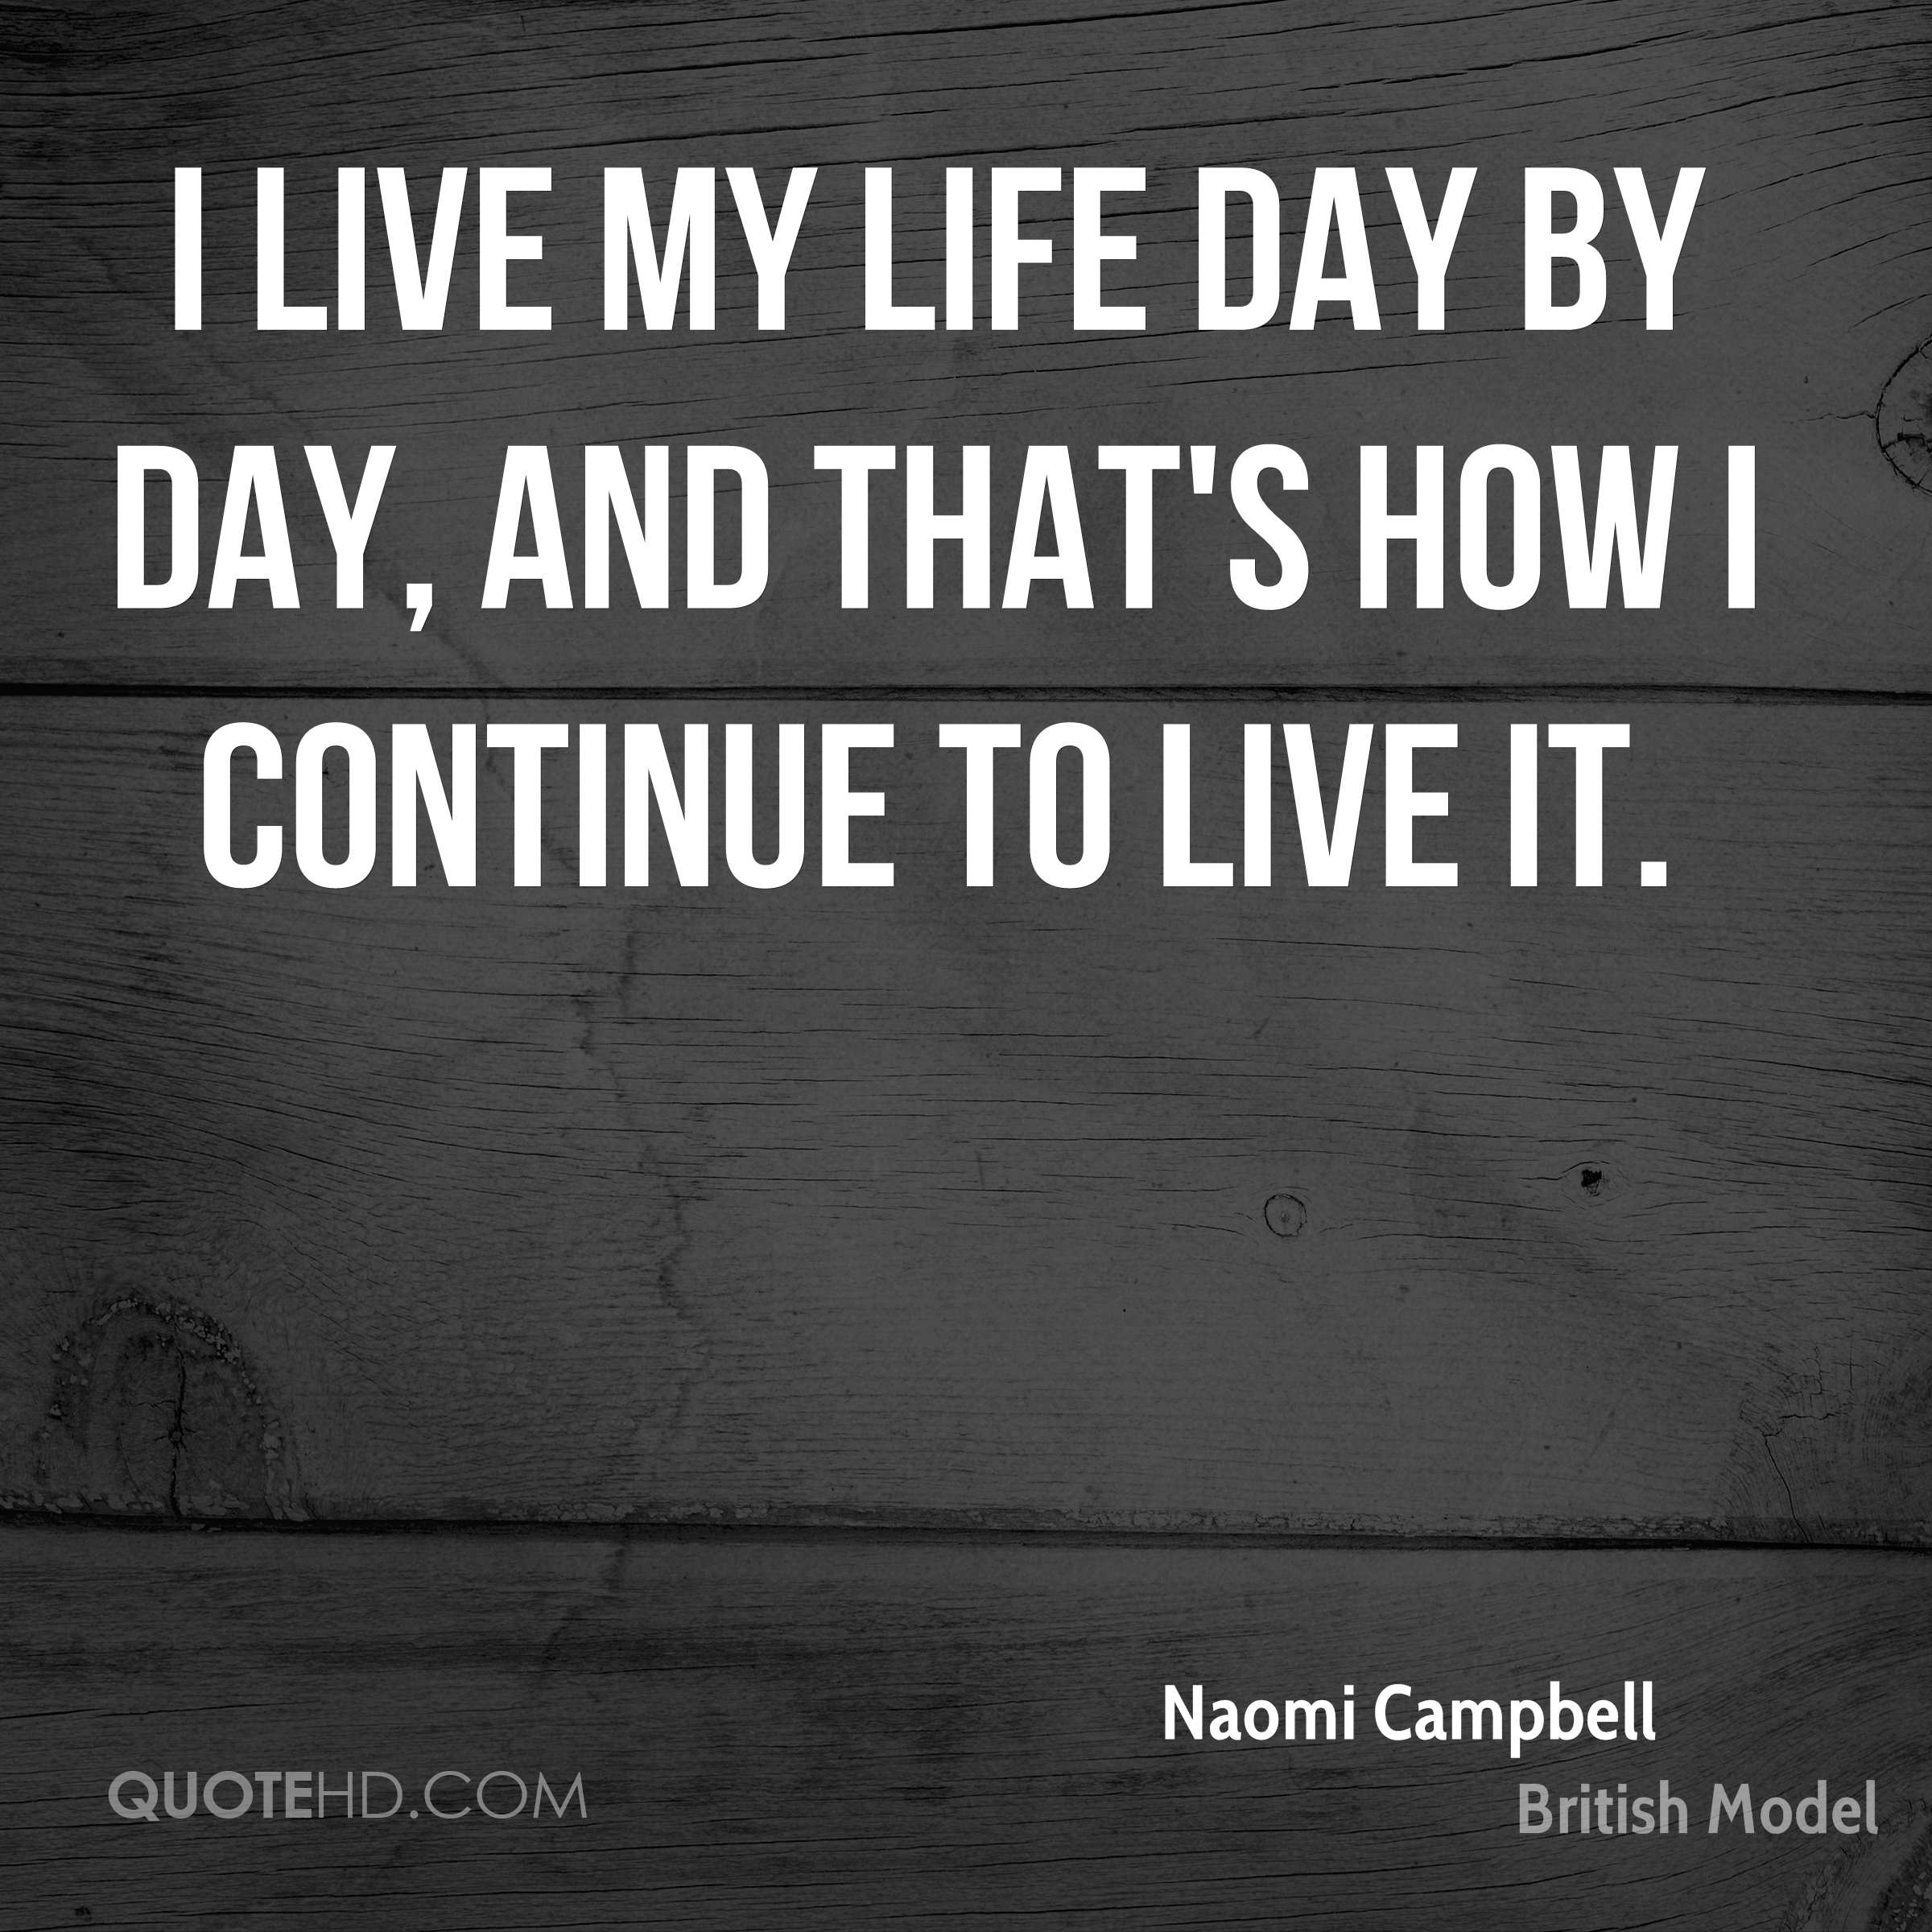 Living My Life Quotes: Naomi Campbell Life Quotes